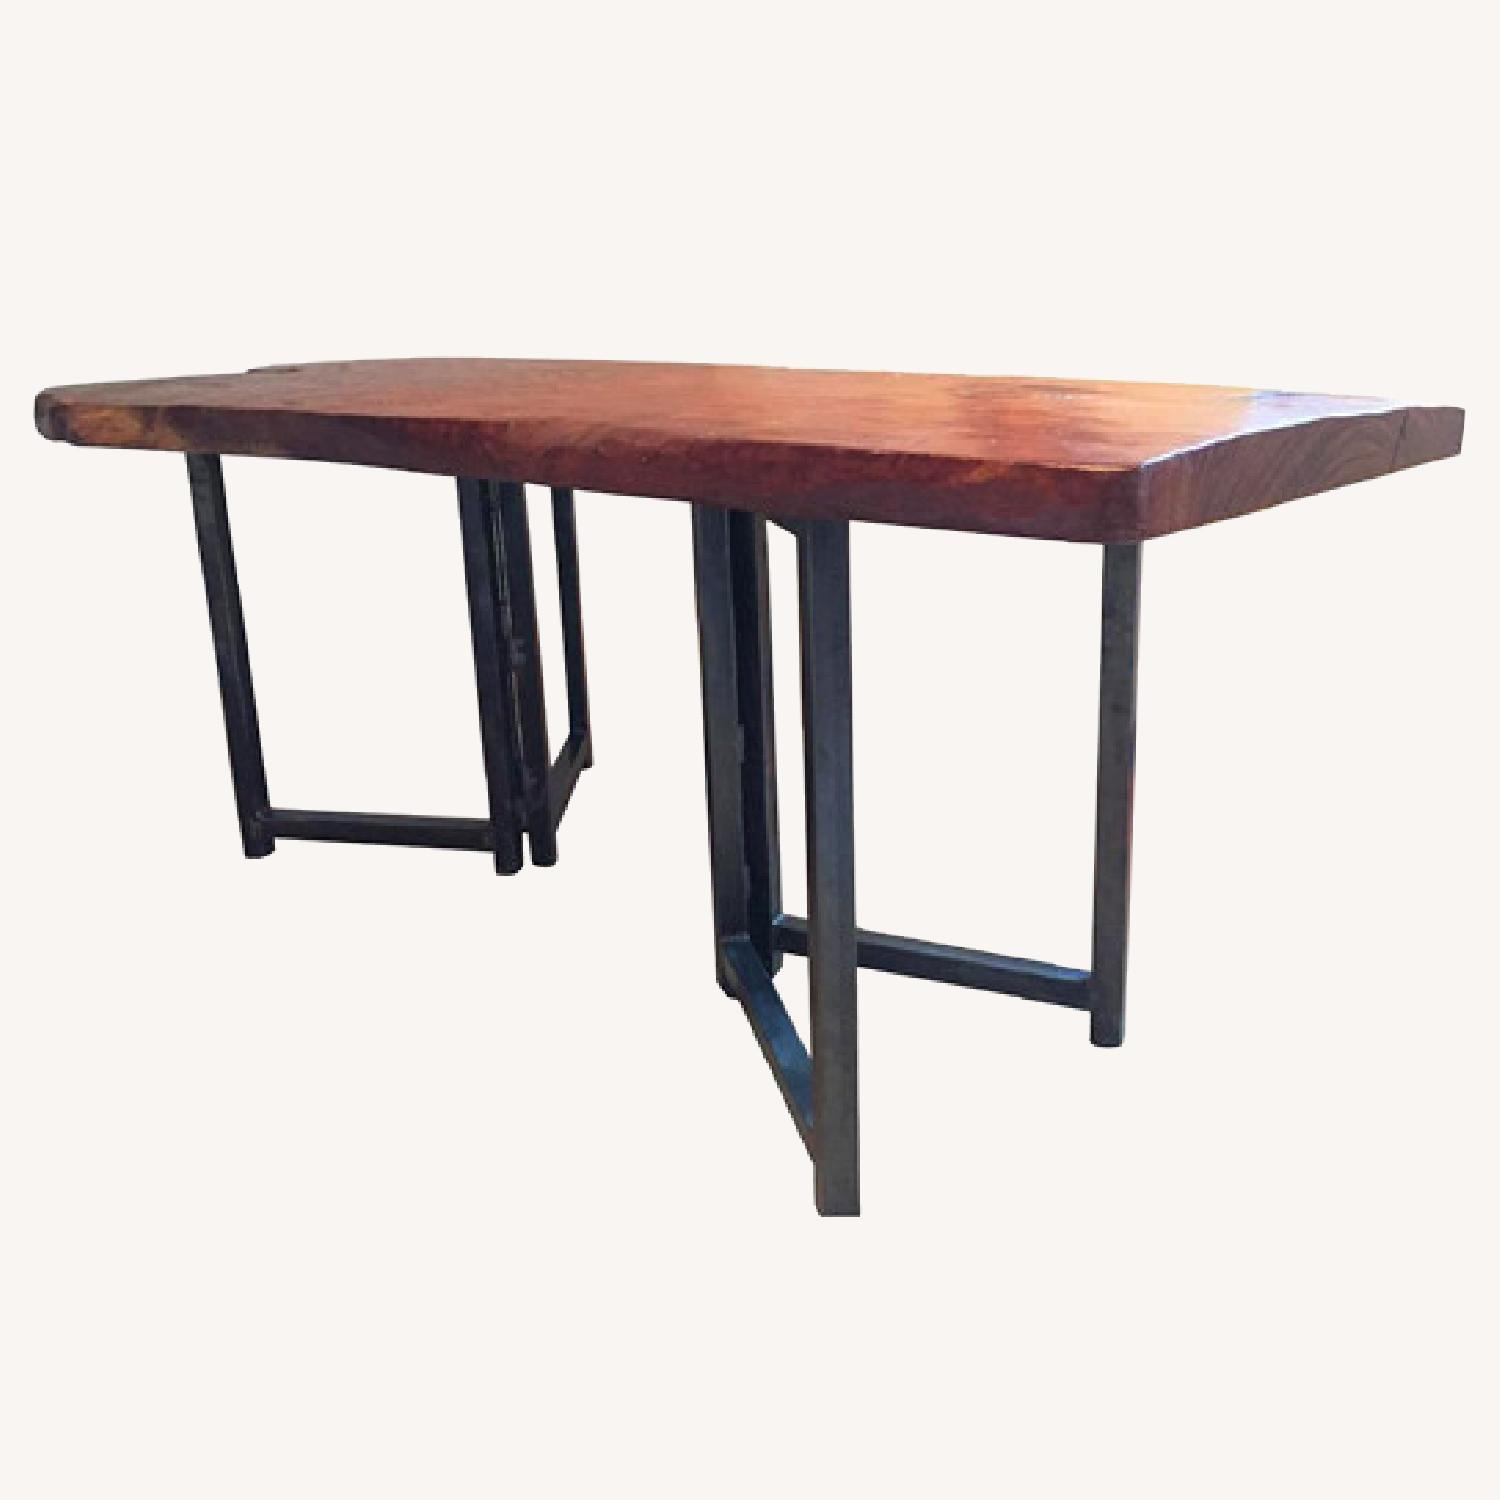 From The Source Hand-Crafted Teak Slab Dining Table - image-8